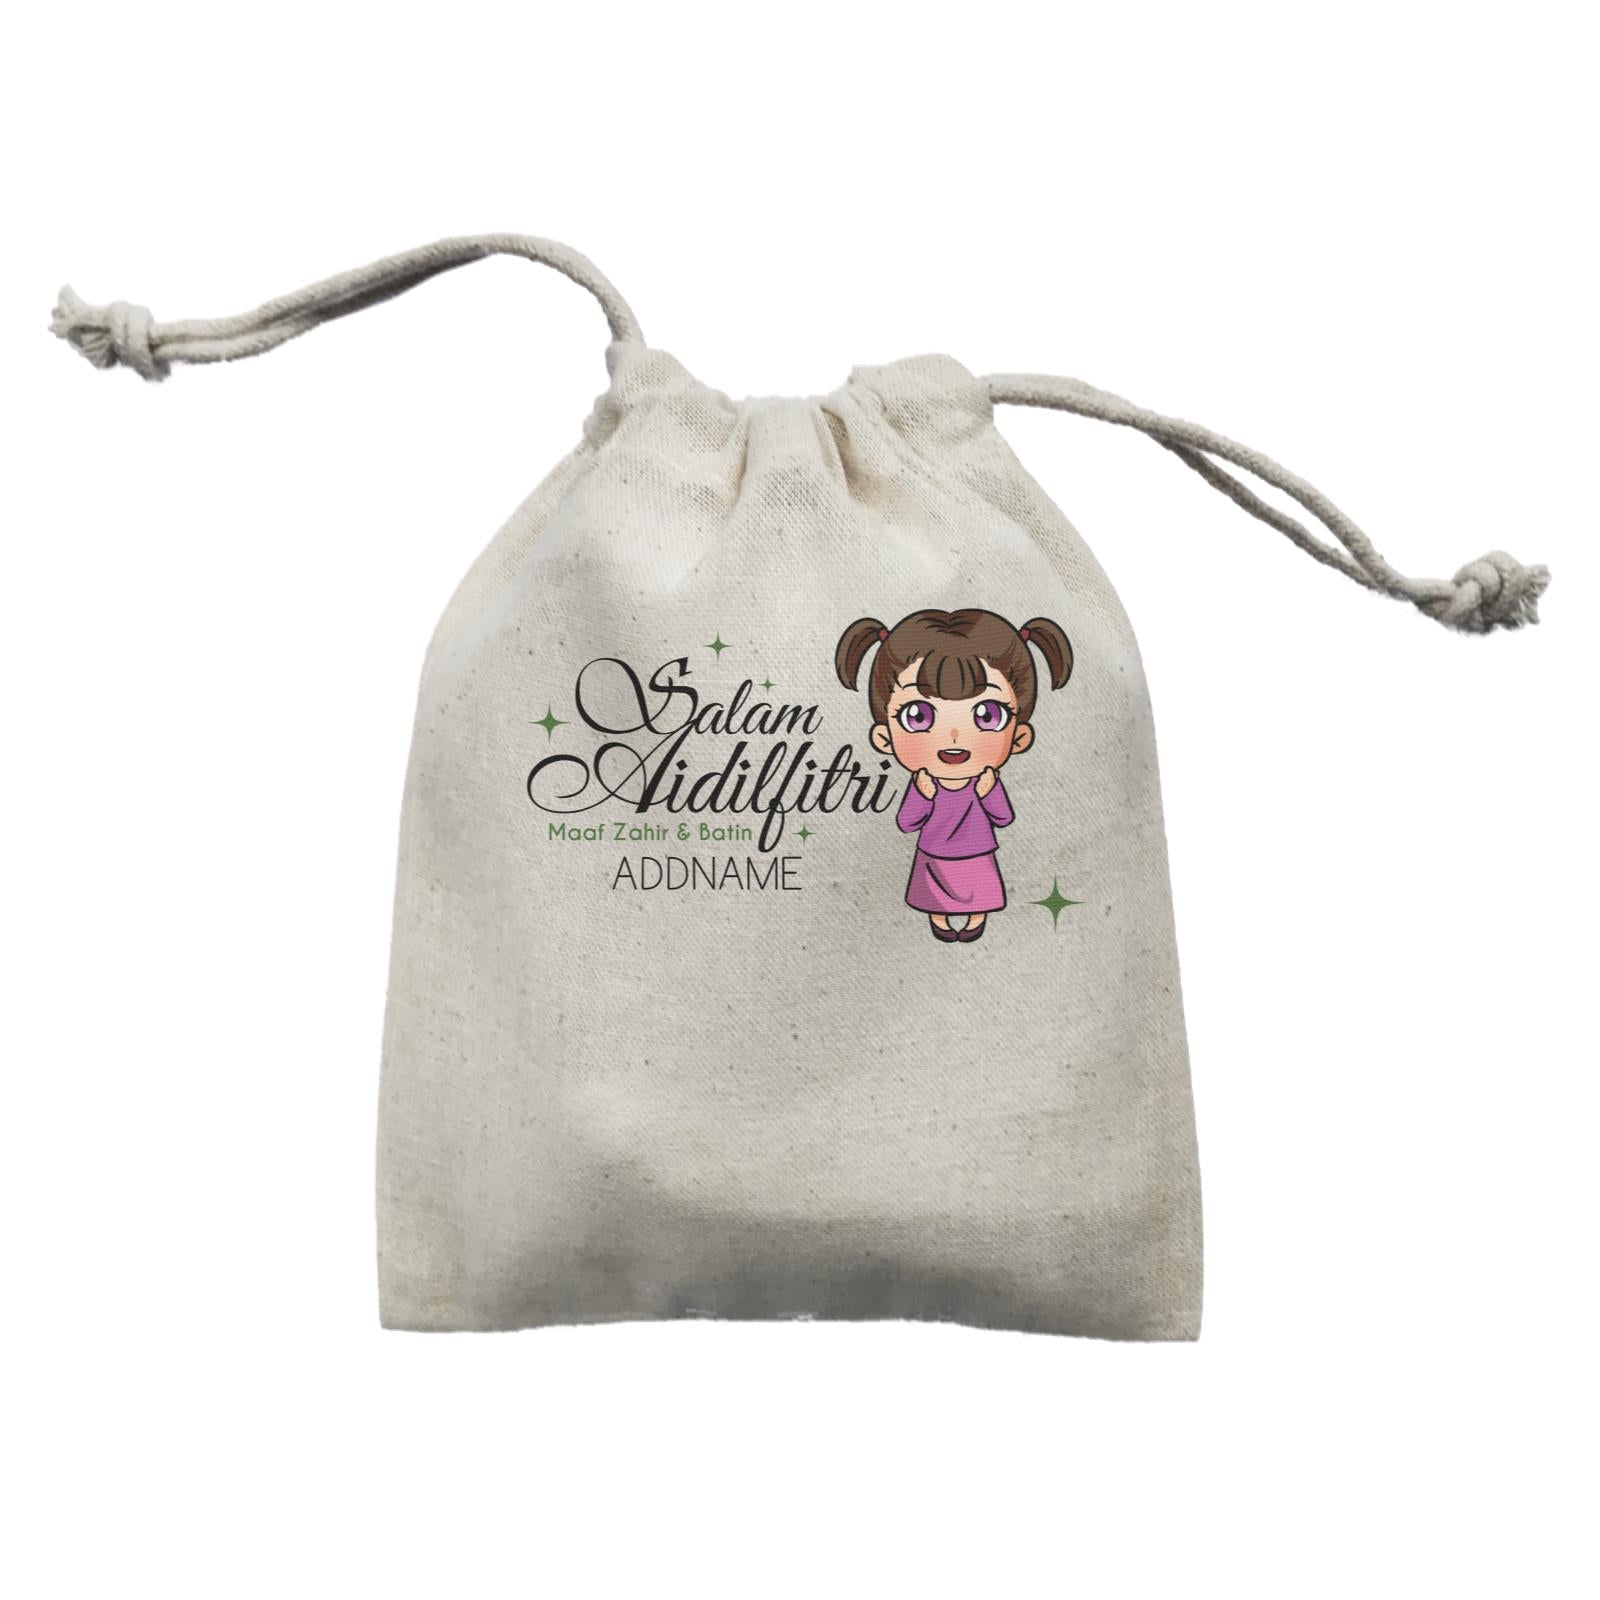 Raya Chibi Wishes Little Girl Addname Wishes Everyone Salam Aidilfitri Maaf Zahir & Batin Mini Accessories Mini Pouch